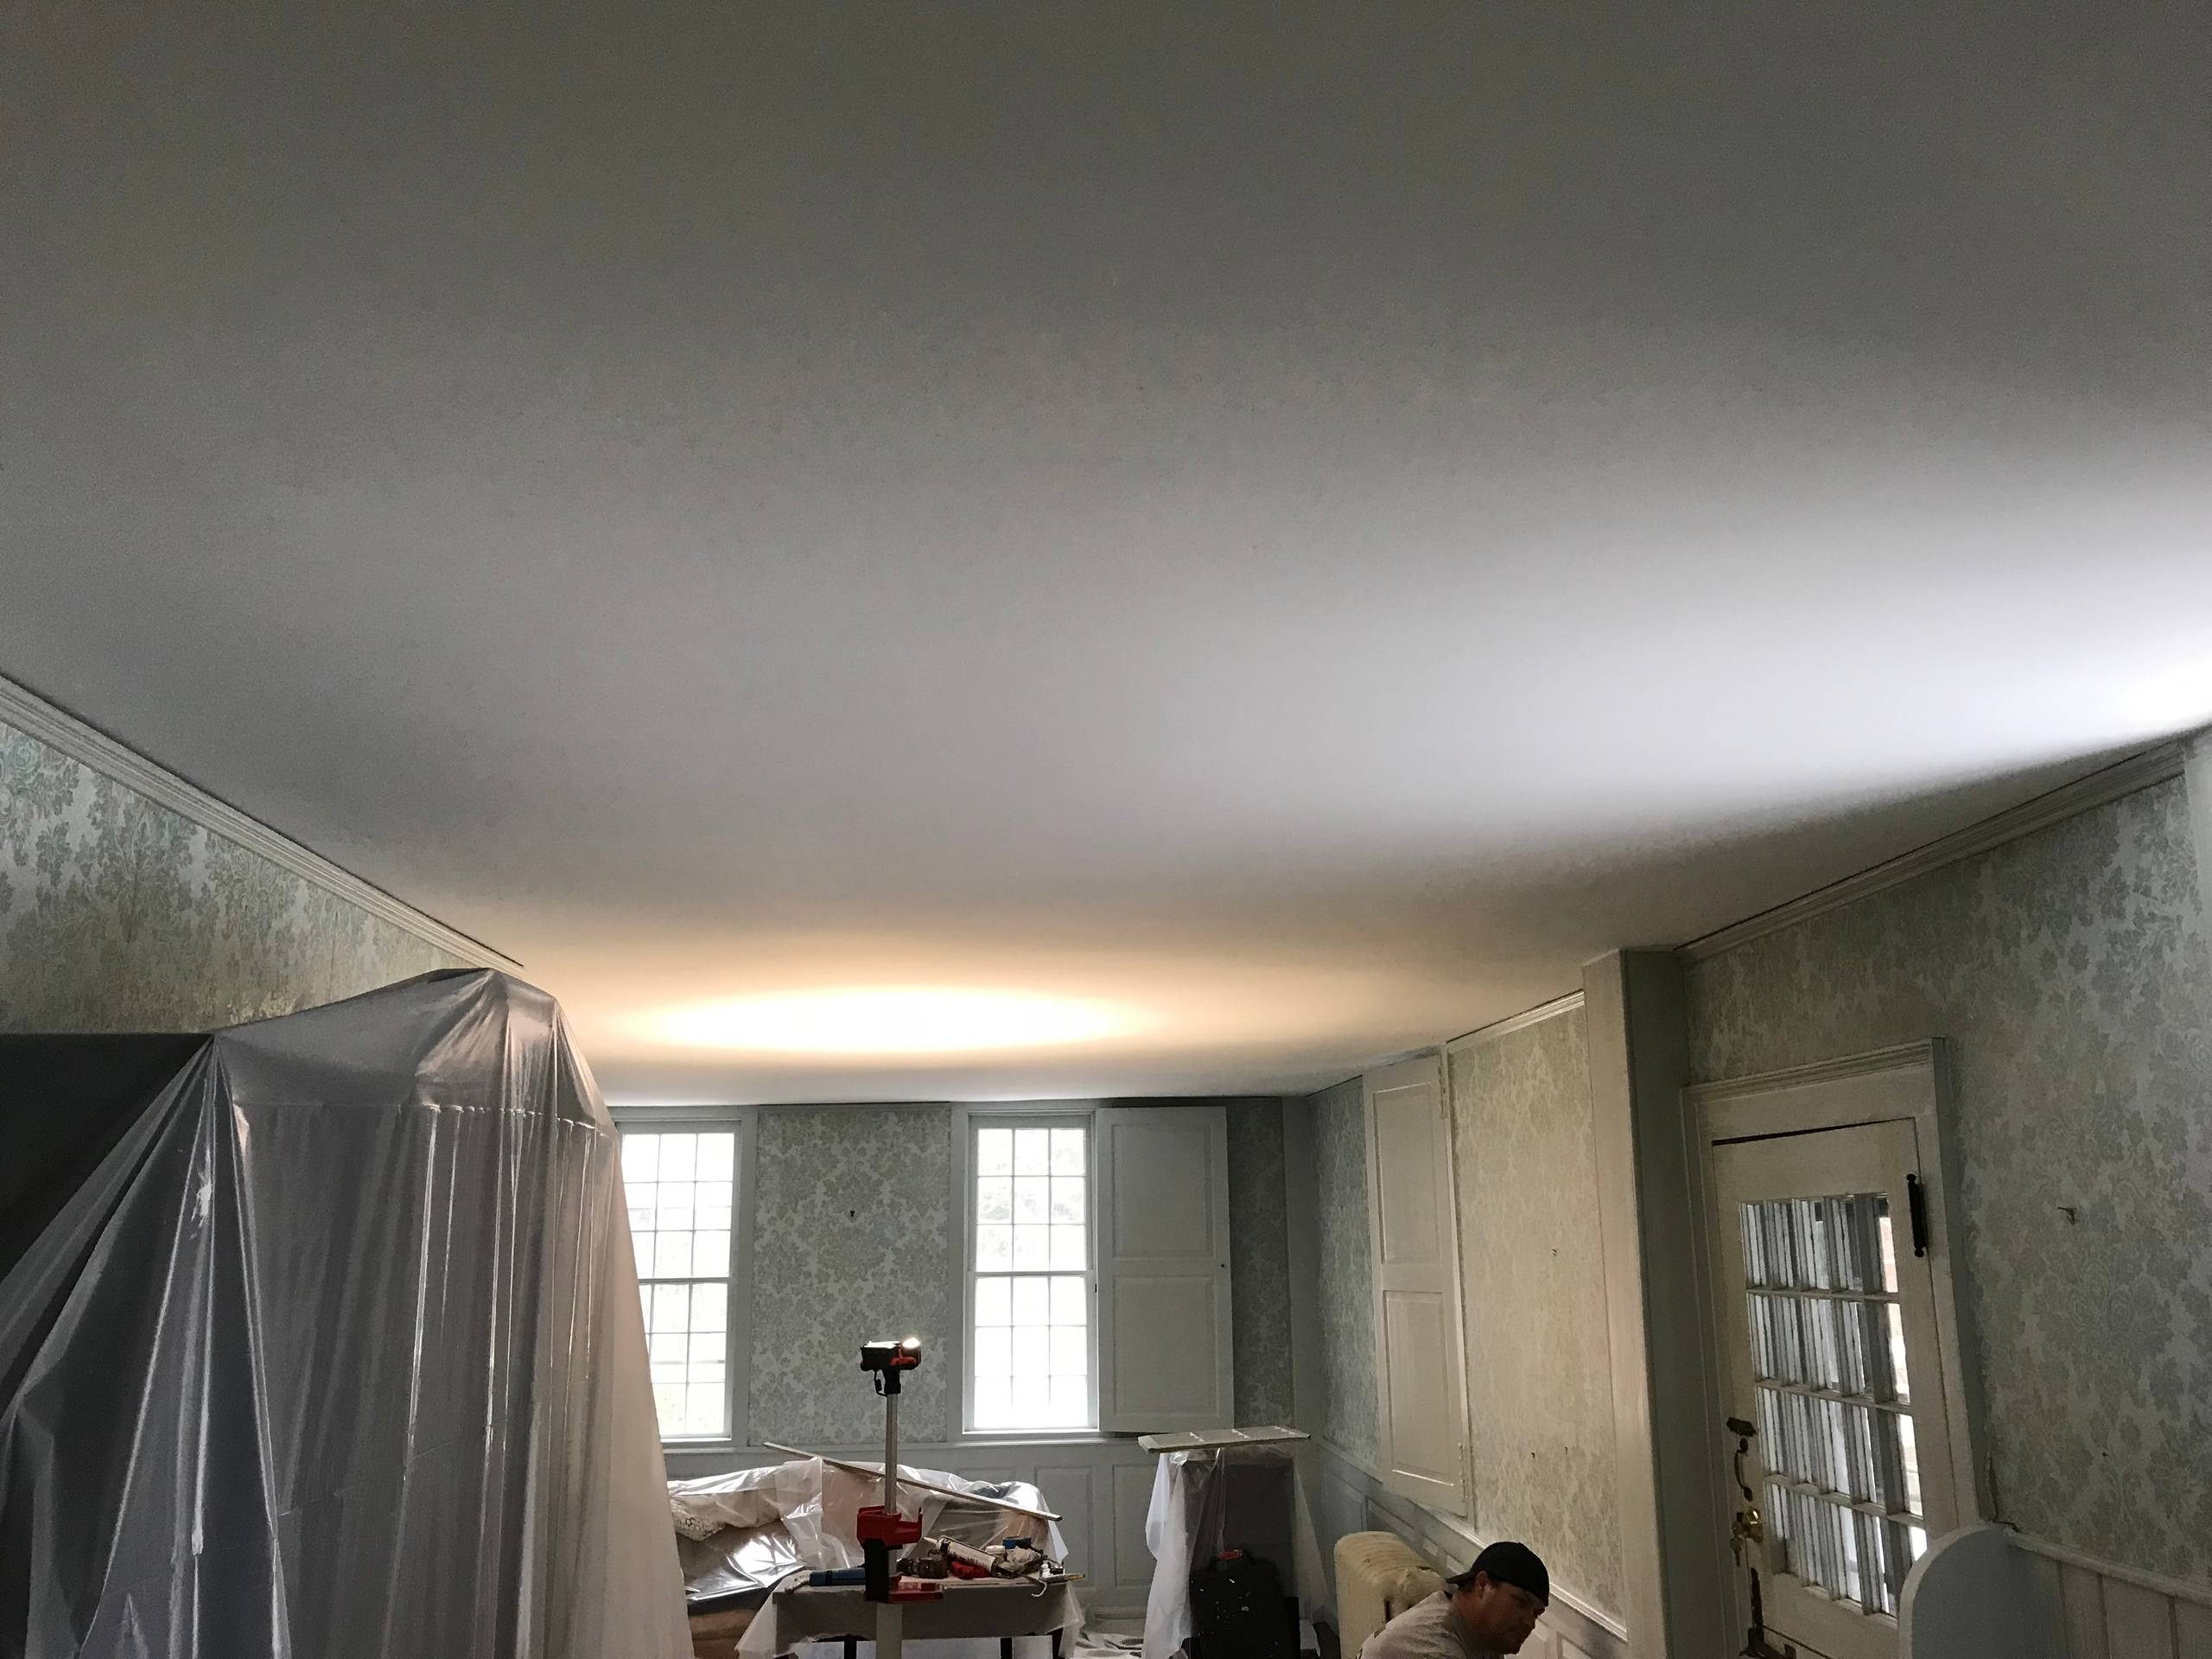 1780's Historic Home Ceiling Repair and Painting Project